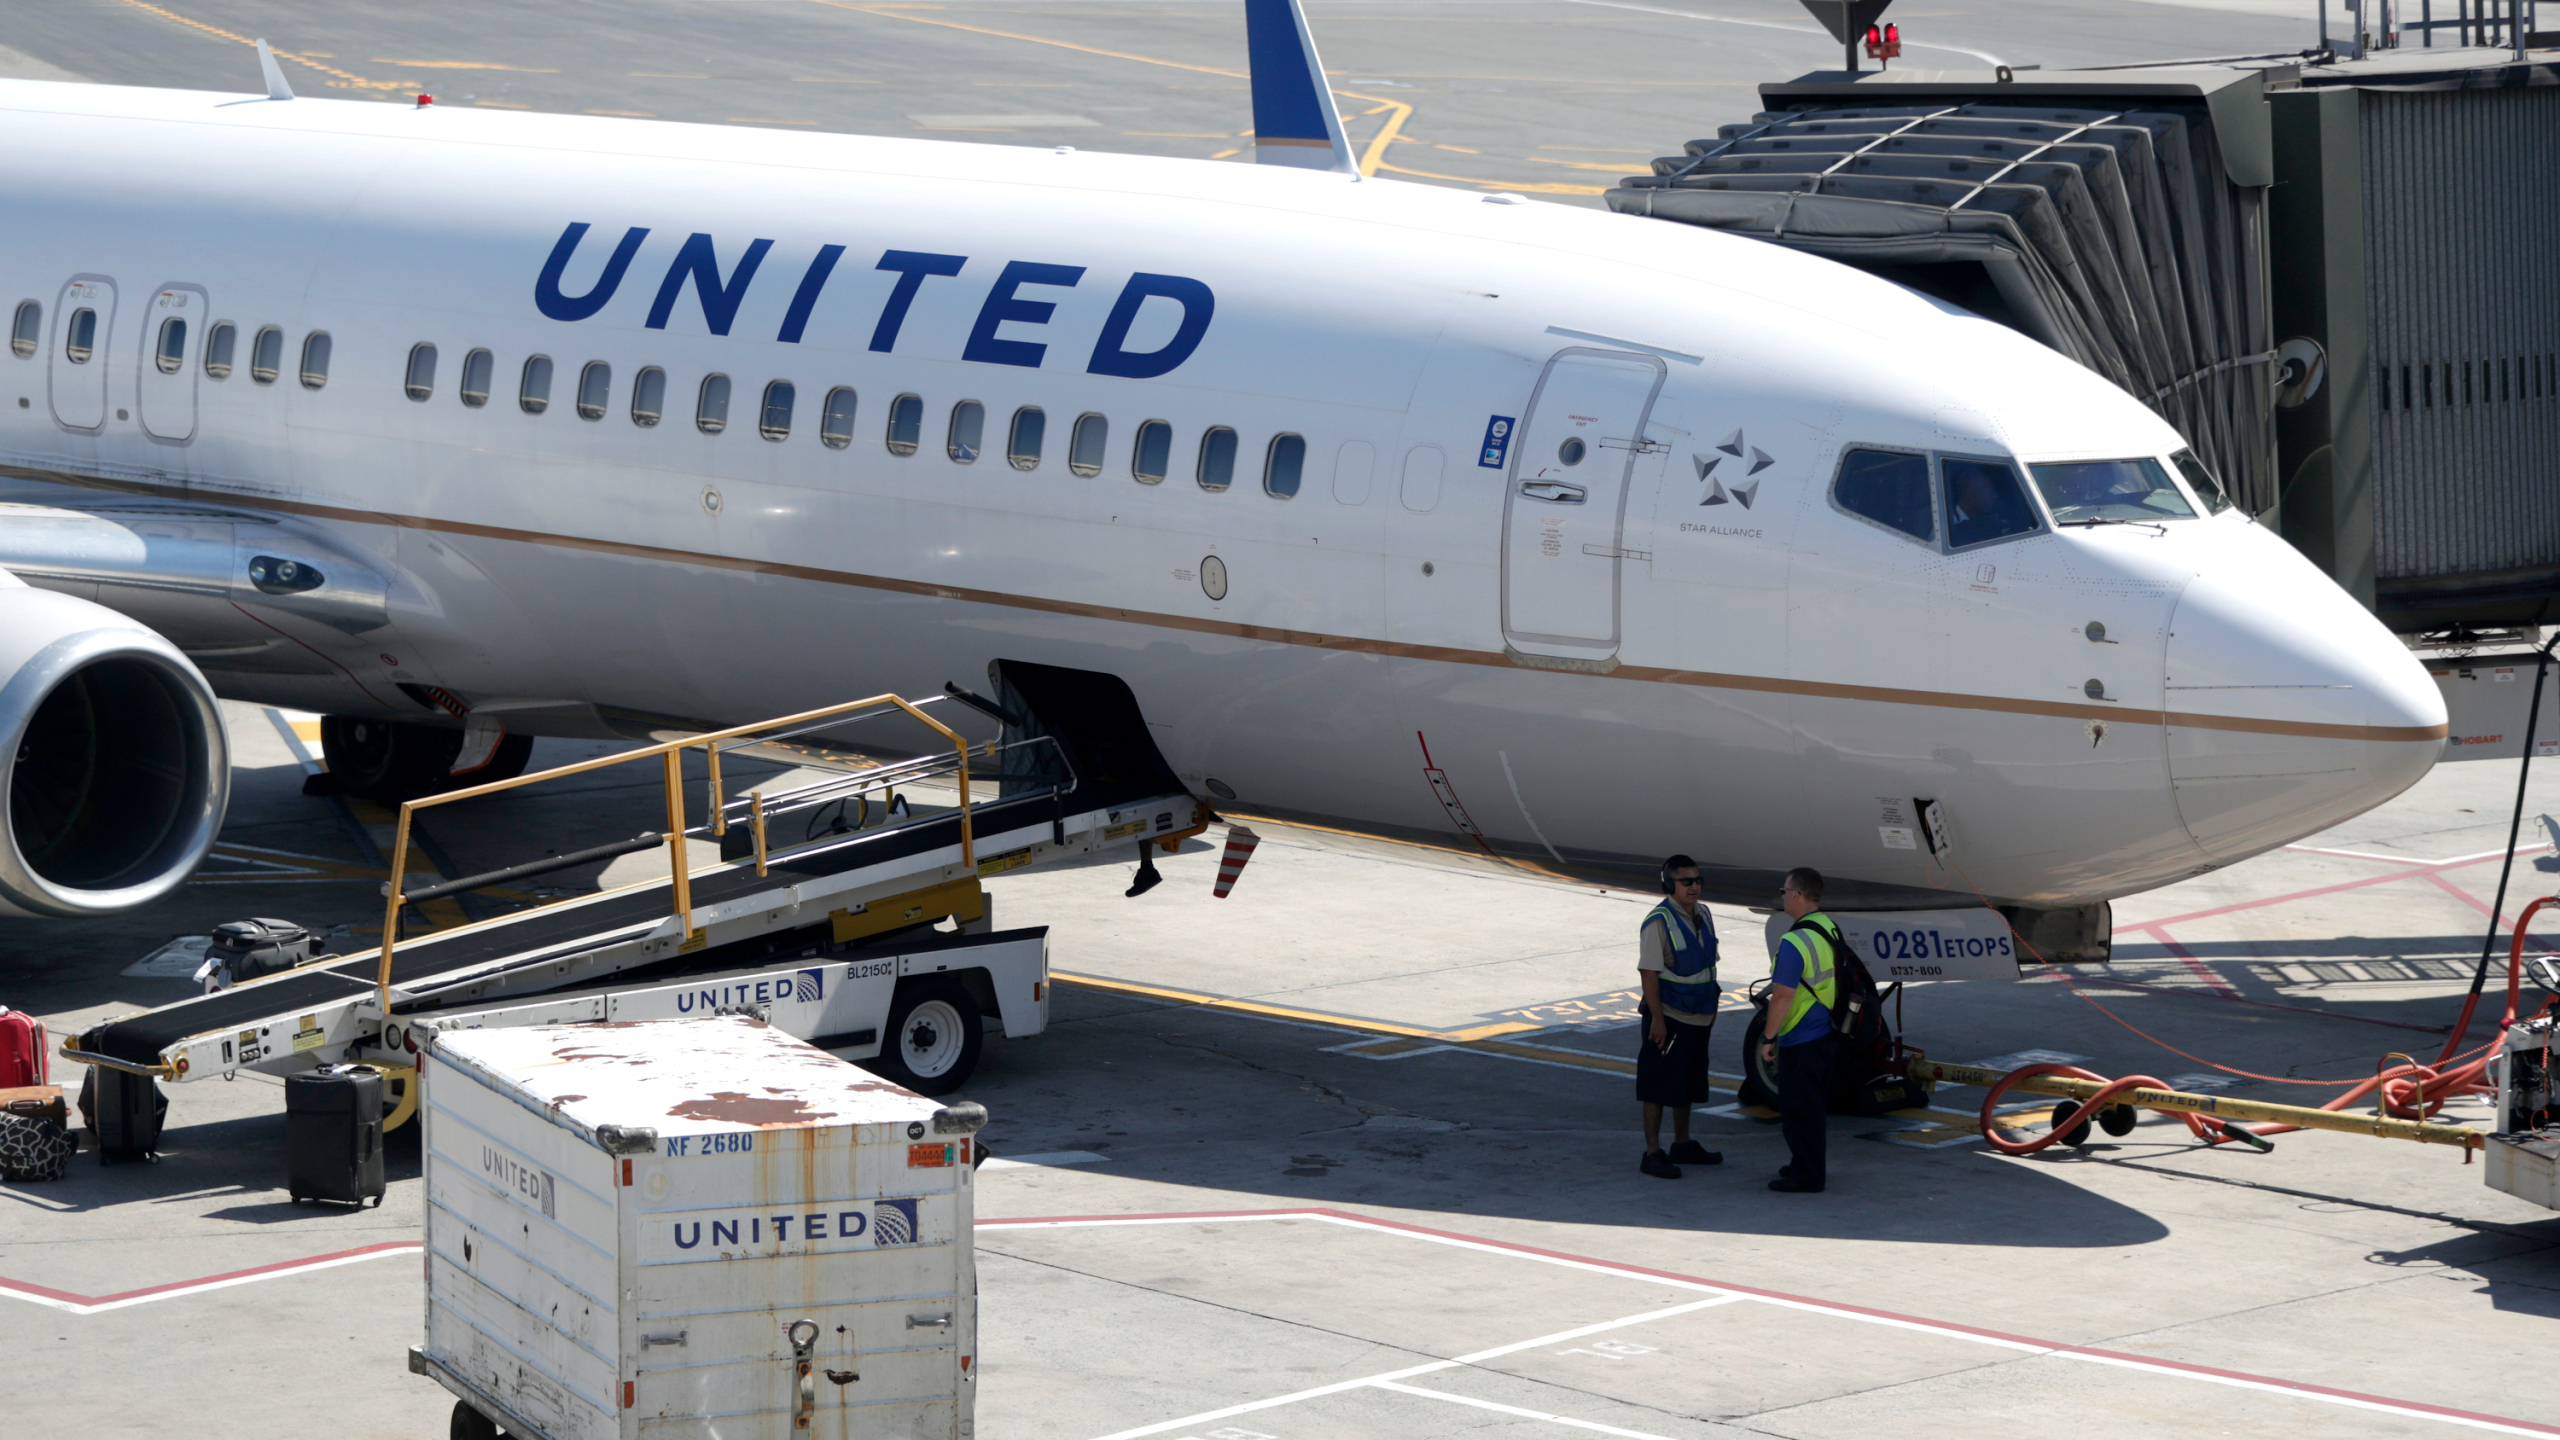 United Airlines is first airline company that introduces mandatory vaccination of the employees